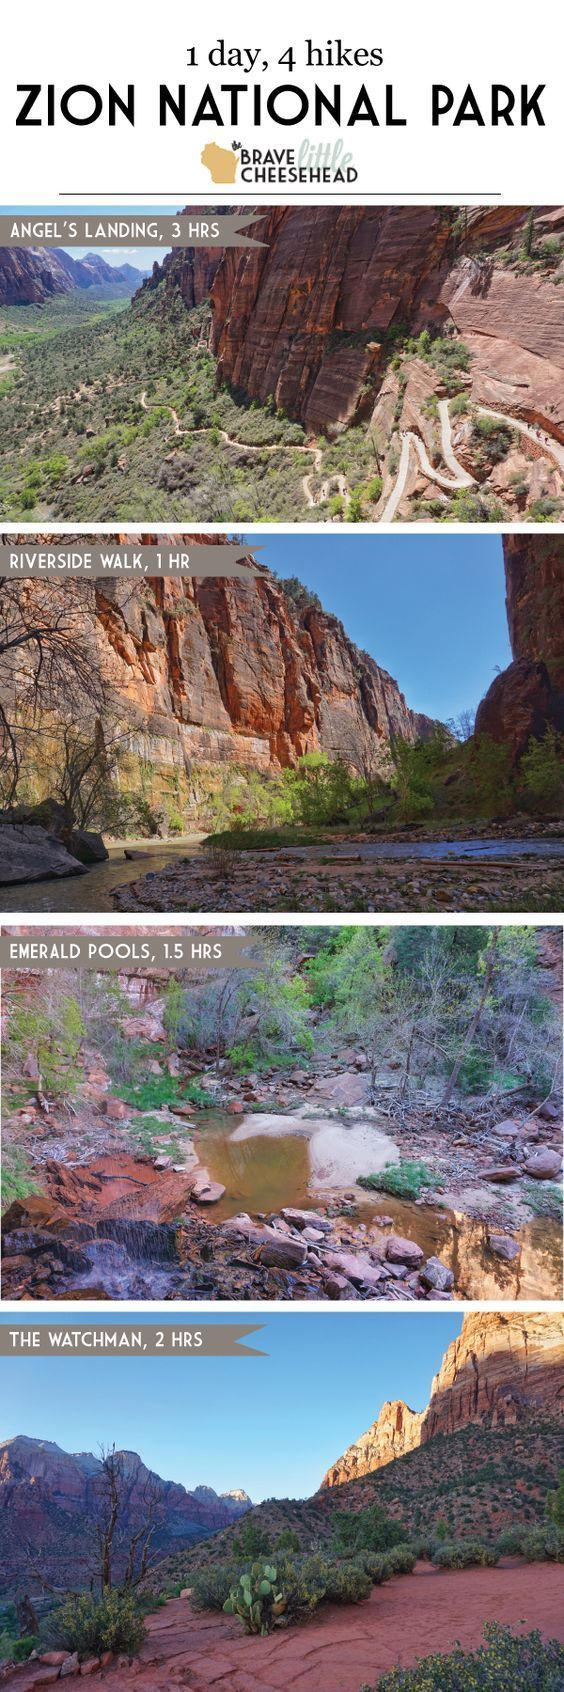 One Day at Zion National Park – #Day #National #na…